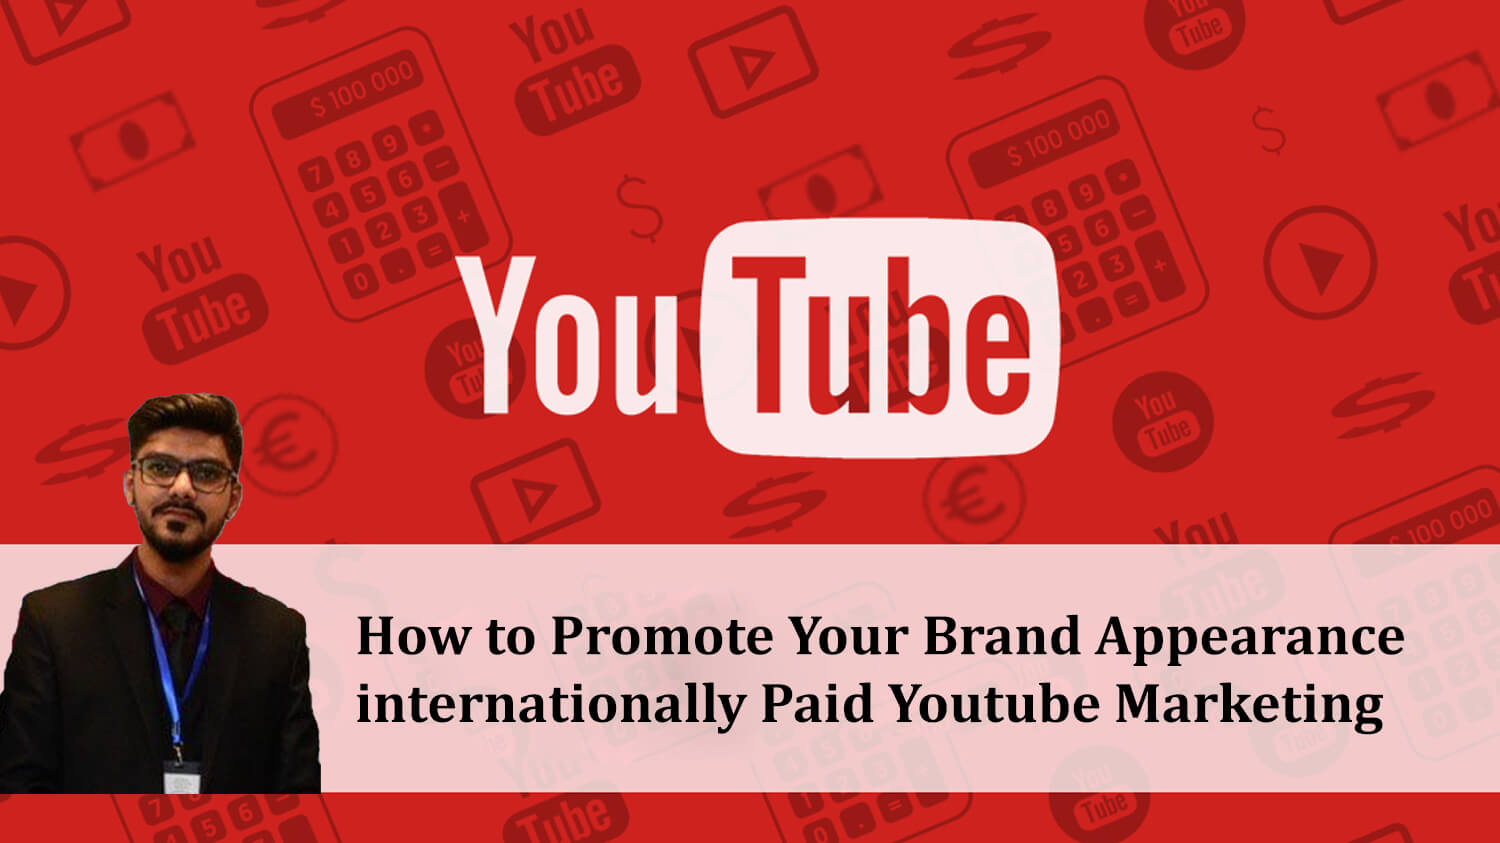 How to Promote Your Brand Appearance Internationally Paid Youtube Marketing